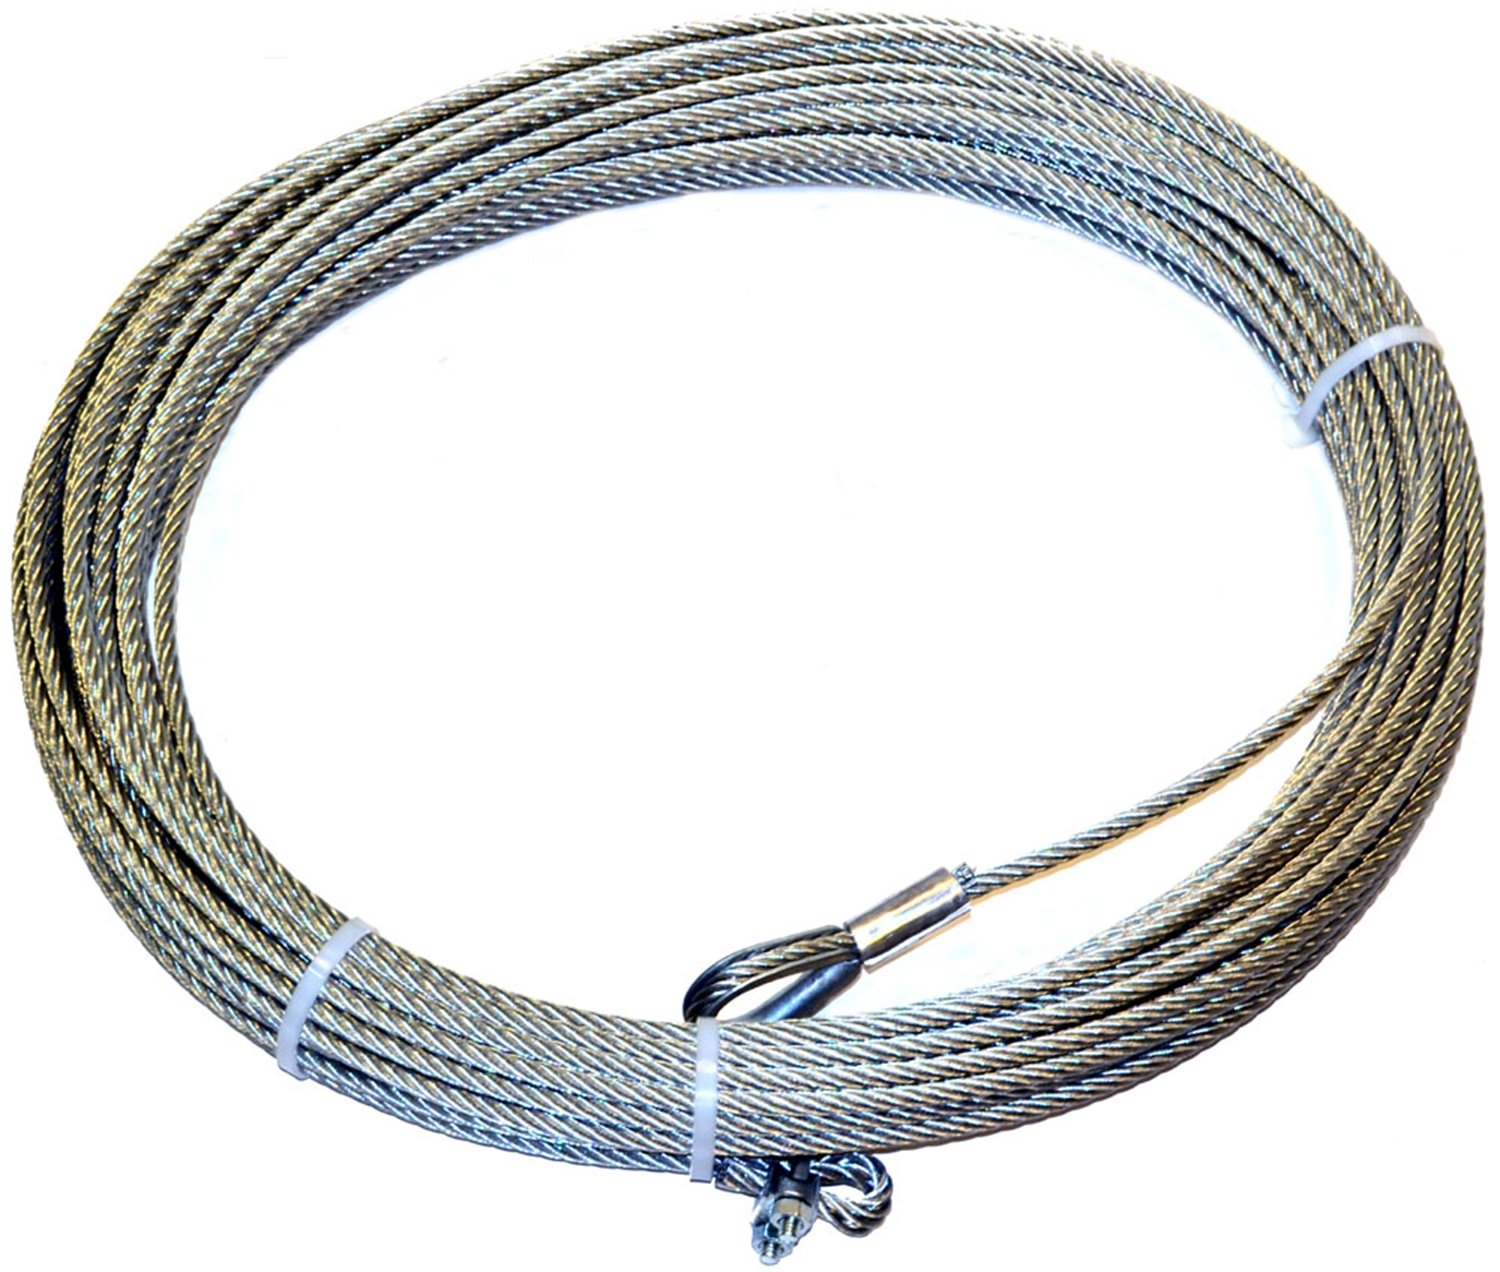 WARN 38311 Wire Rope - 5/16 in. x 150 ft.